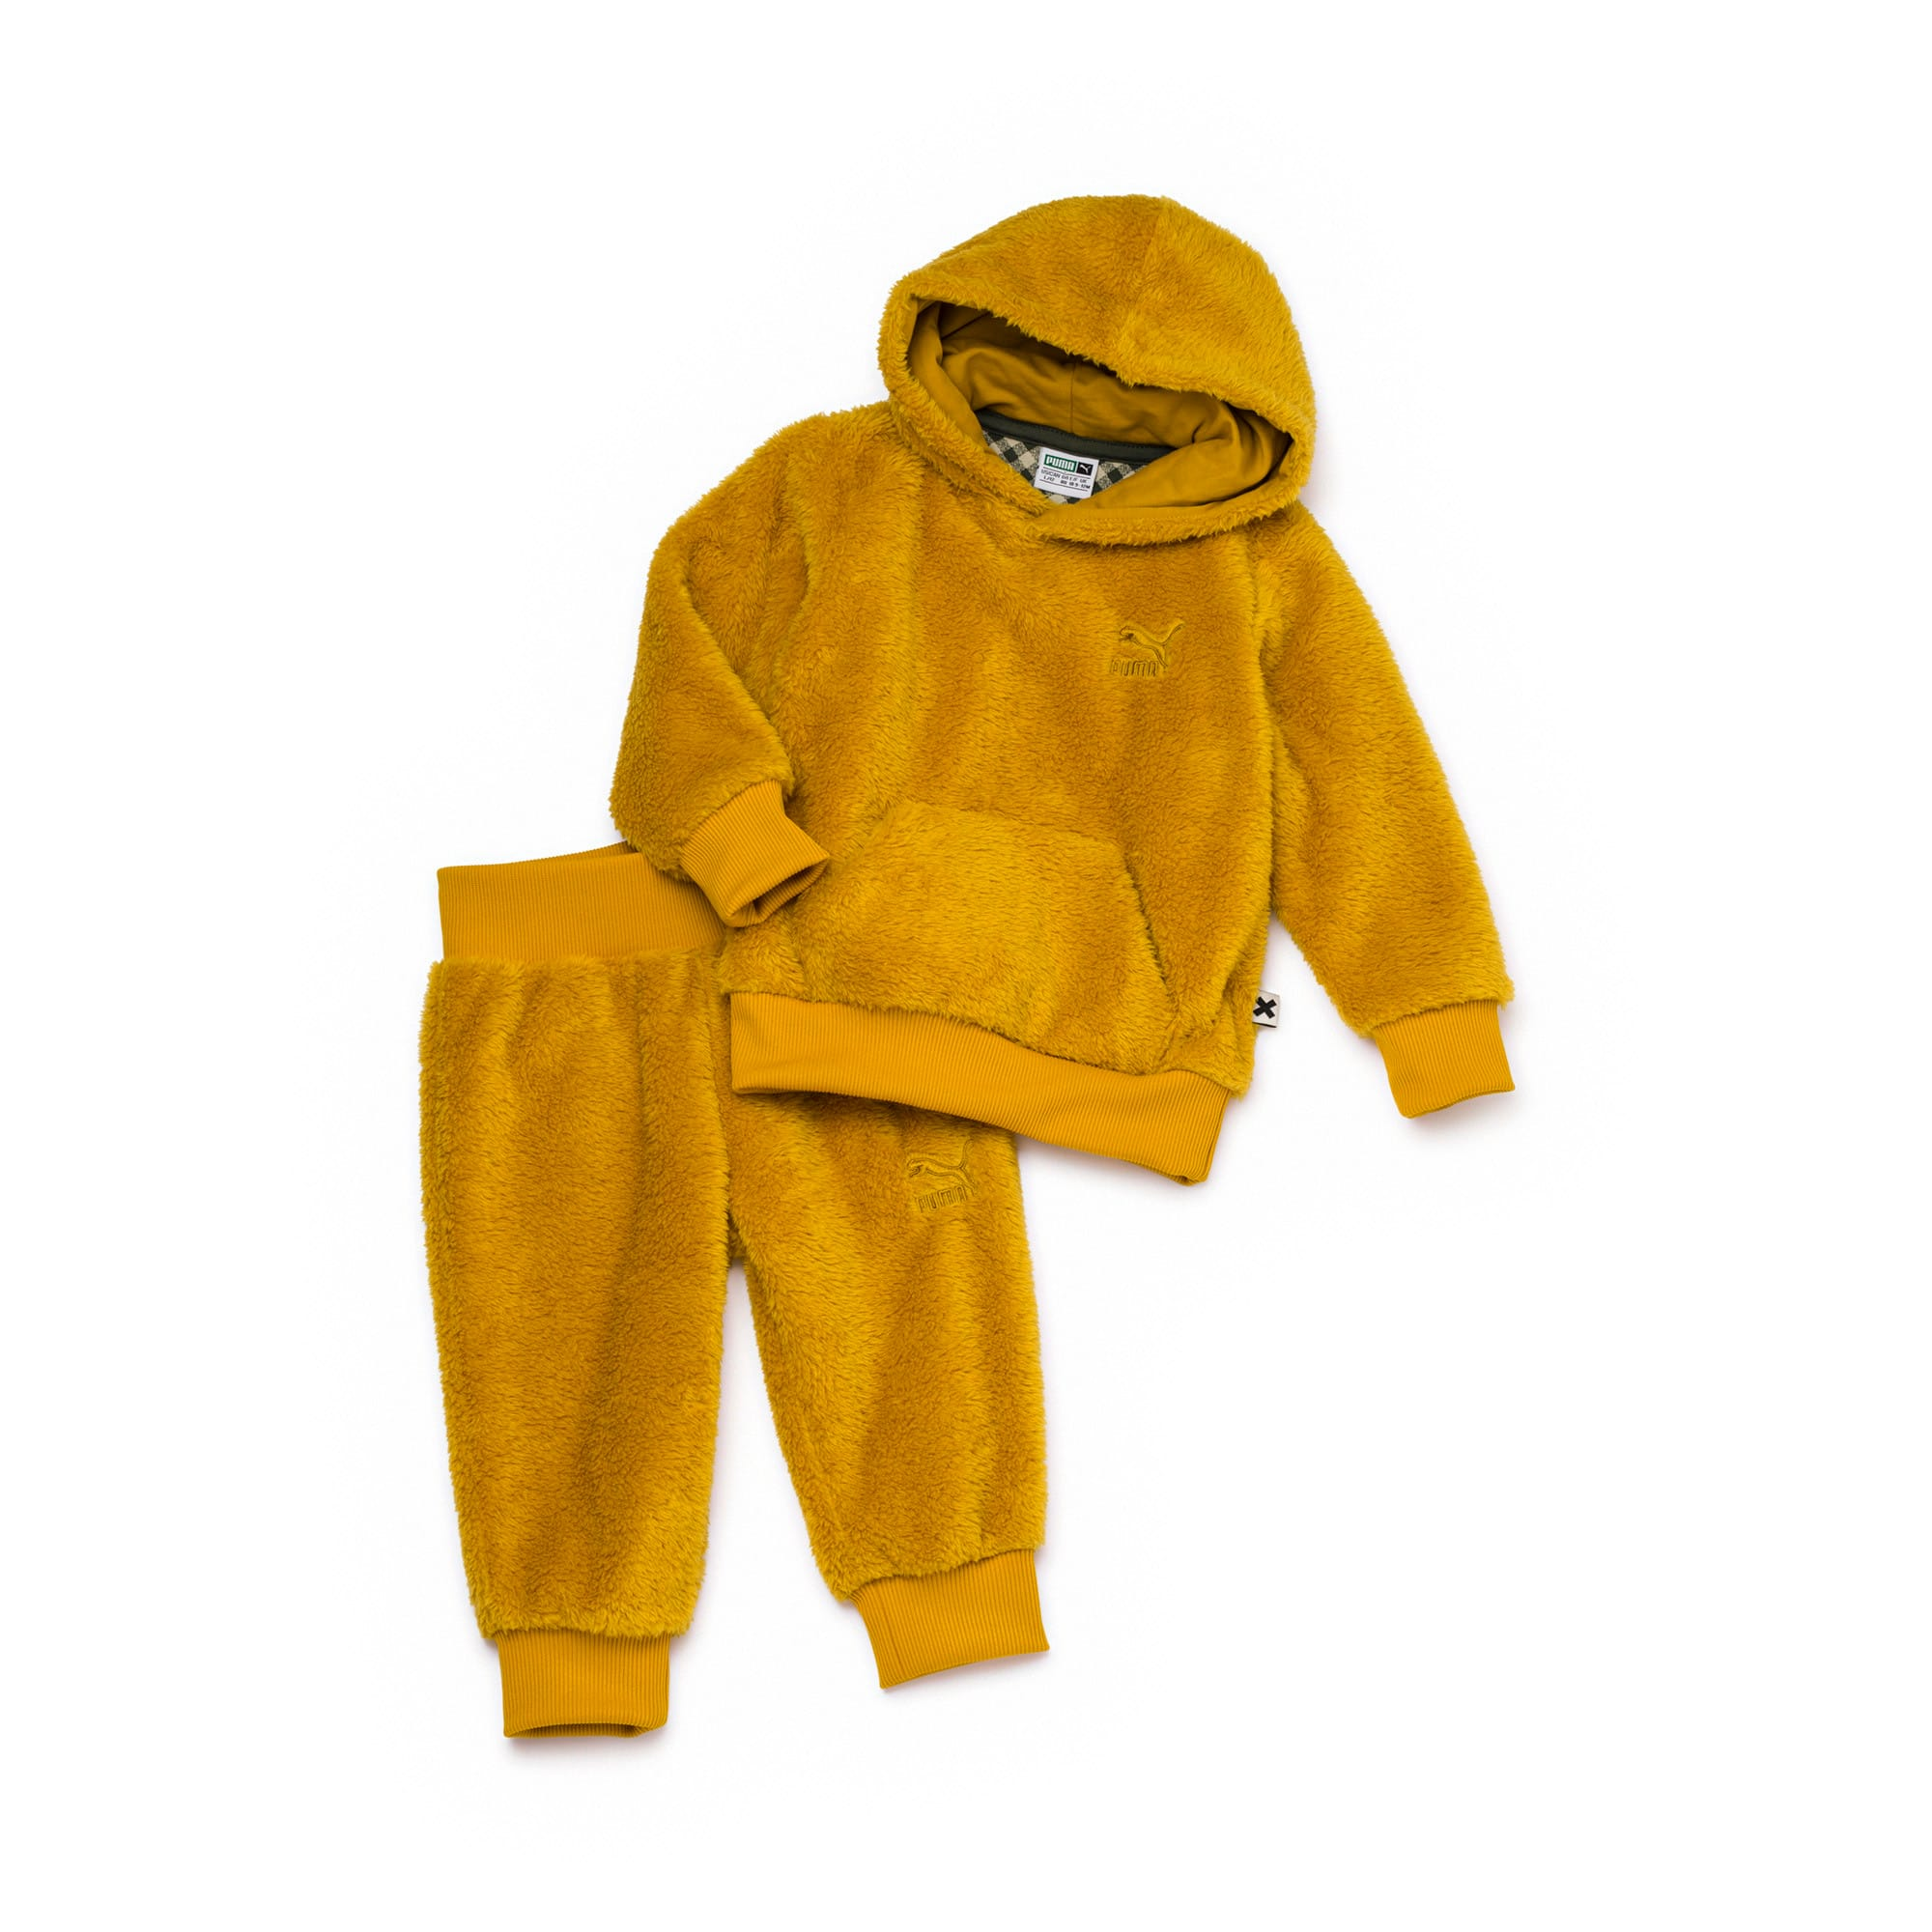 PUMA x TINYCOTTONS Classic Sherpa Toddler Set, Arrowwood, large